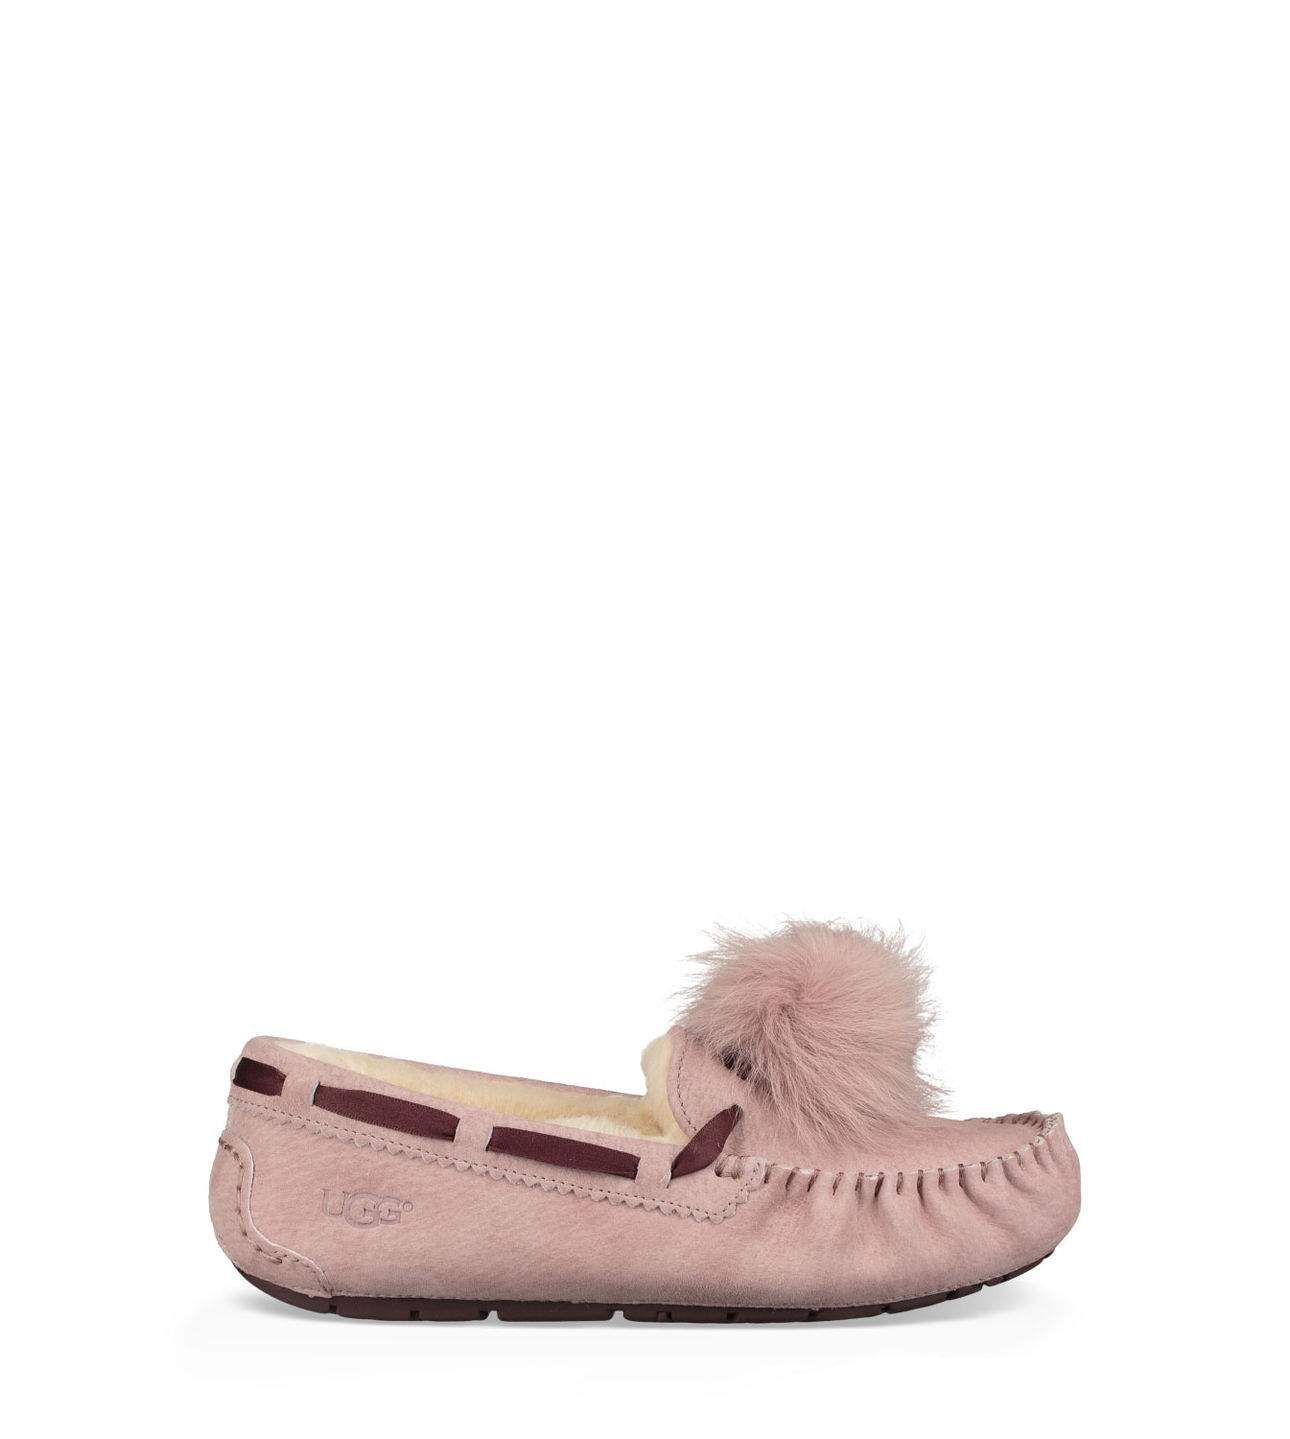 26a5f9b53cd Shop the Dakota Pom Pom Slipper